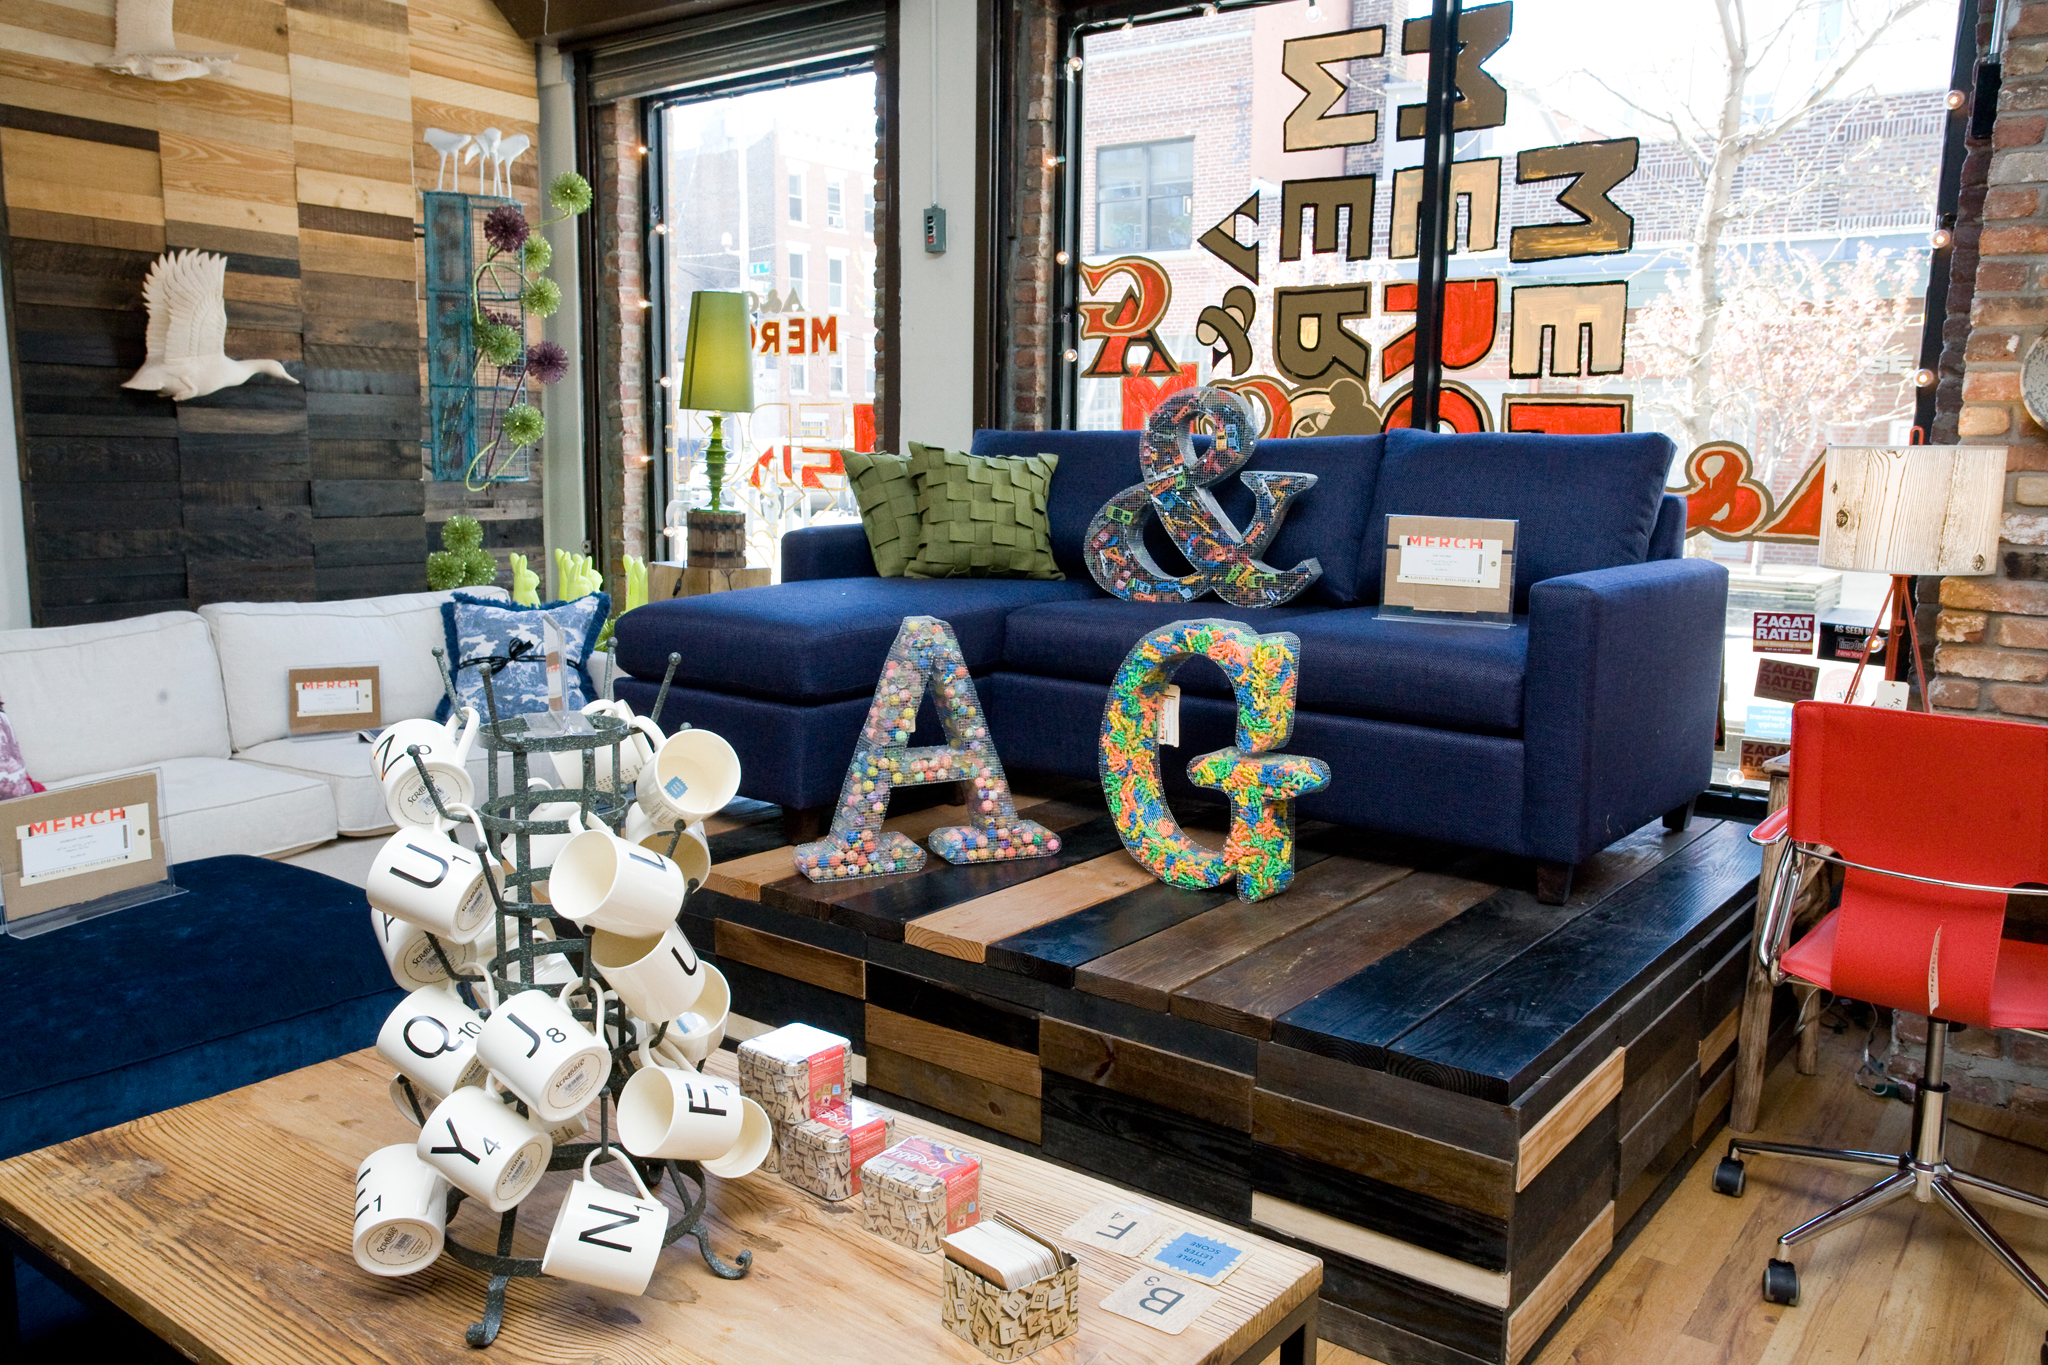 Home decor stores in NYC for decorating ideas and home furnishings A G Merch